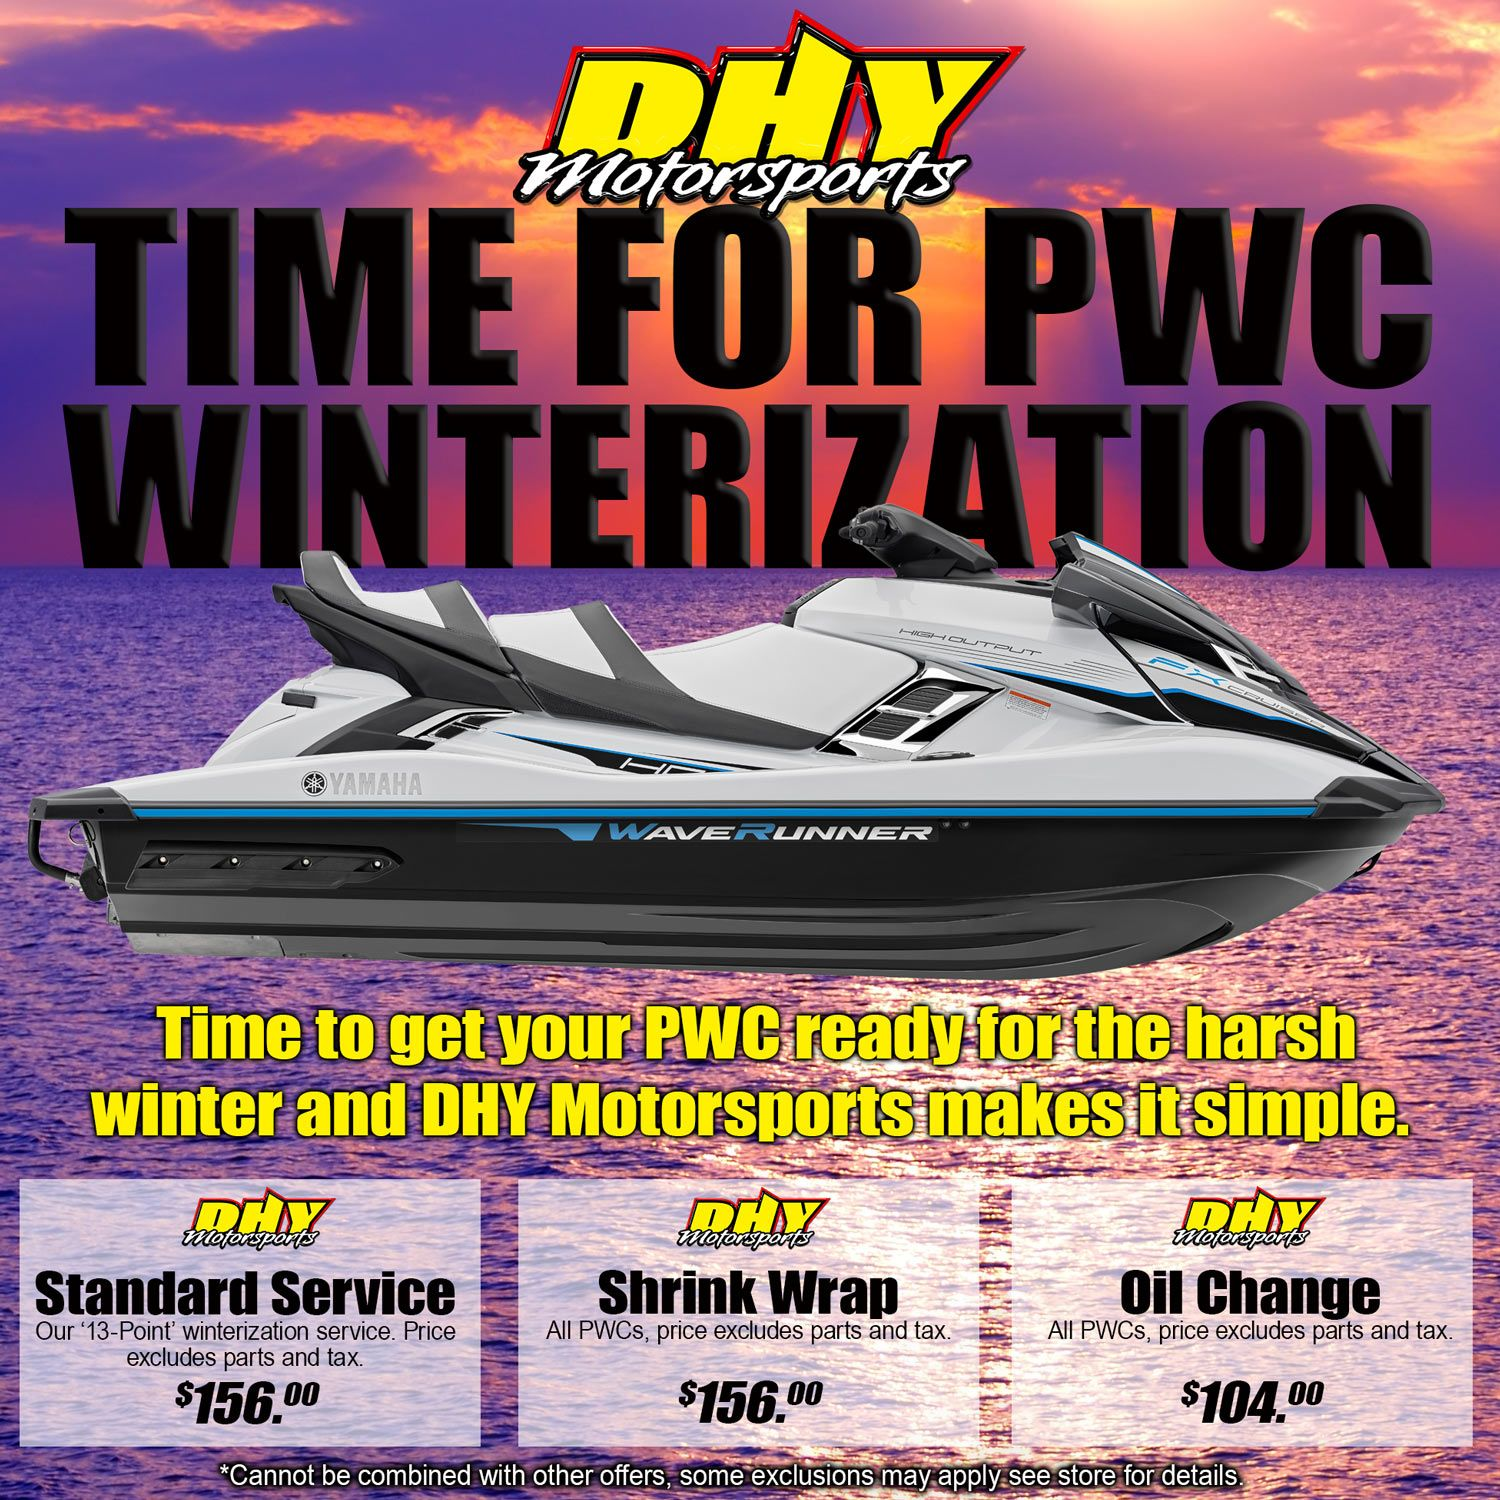 Time To Get Your Pwc Ready For The Long Winter The Easy Way At Dhymotorsports Get Our 13 Point Basic Winterization Package Oil Change Shrink Wrap Motorsport